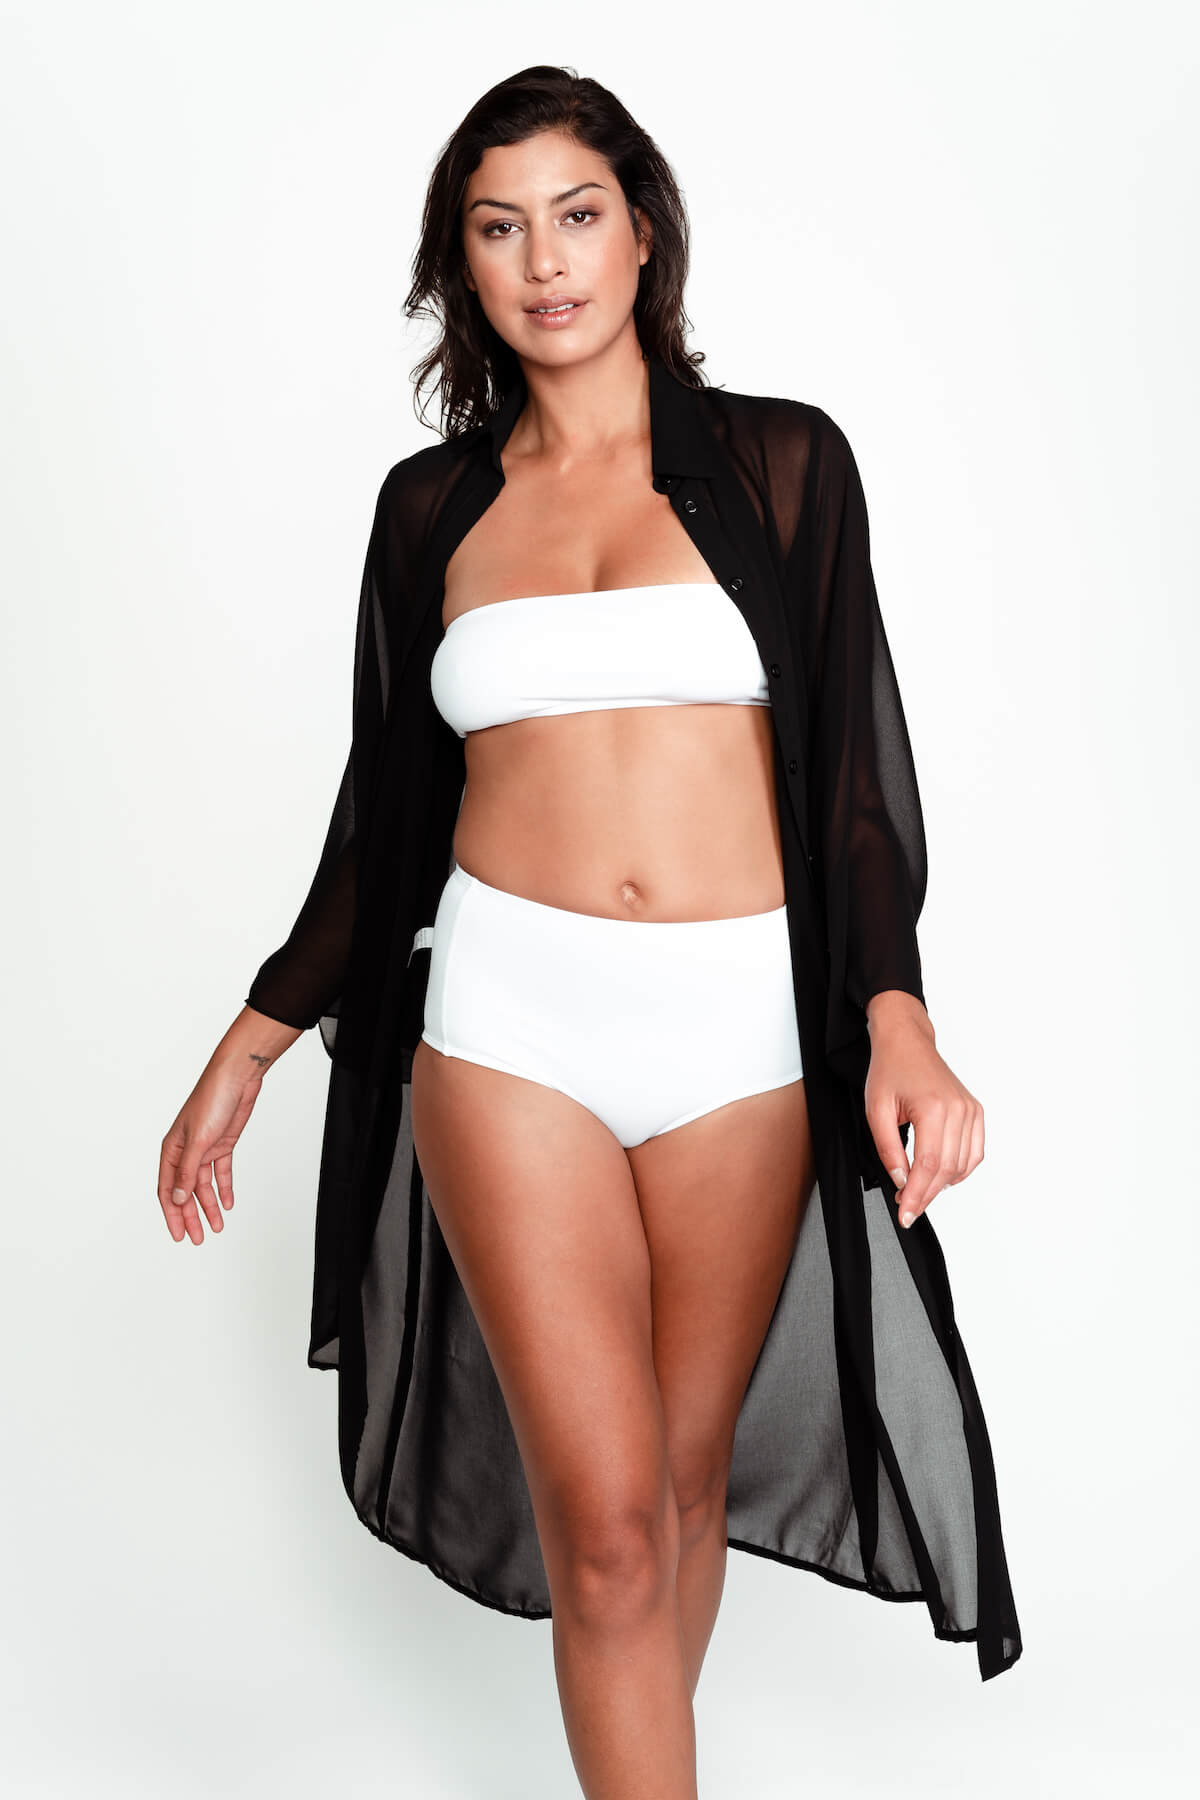 Kris swimsuit cover up in Black